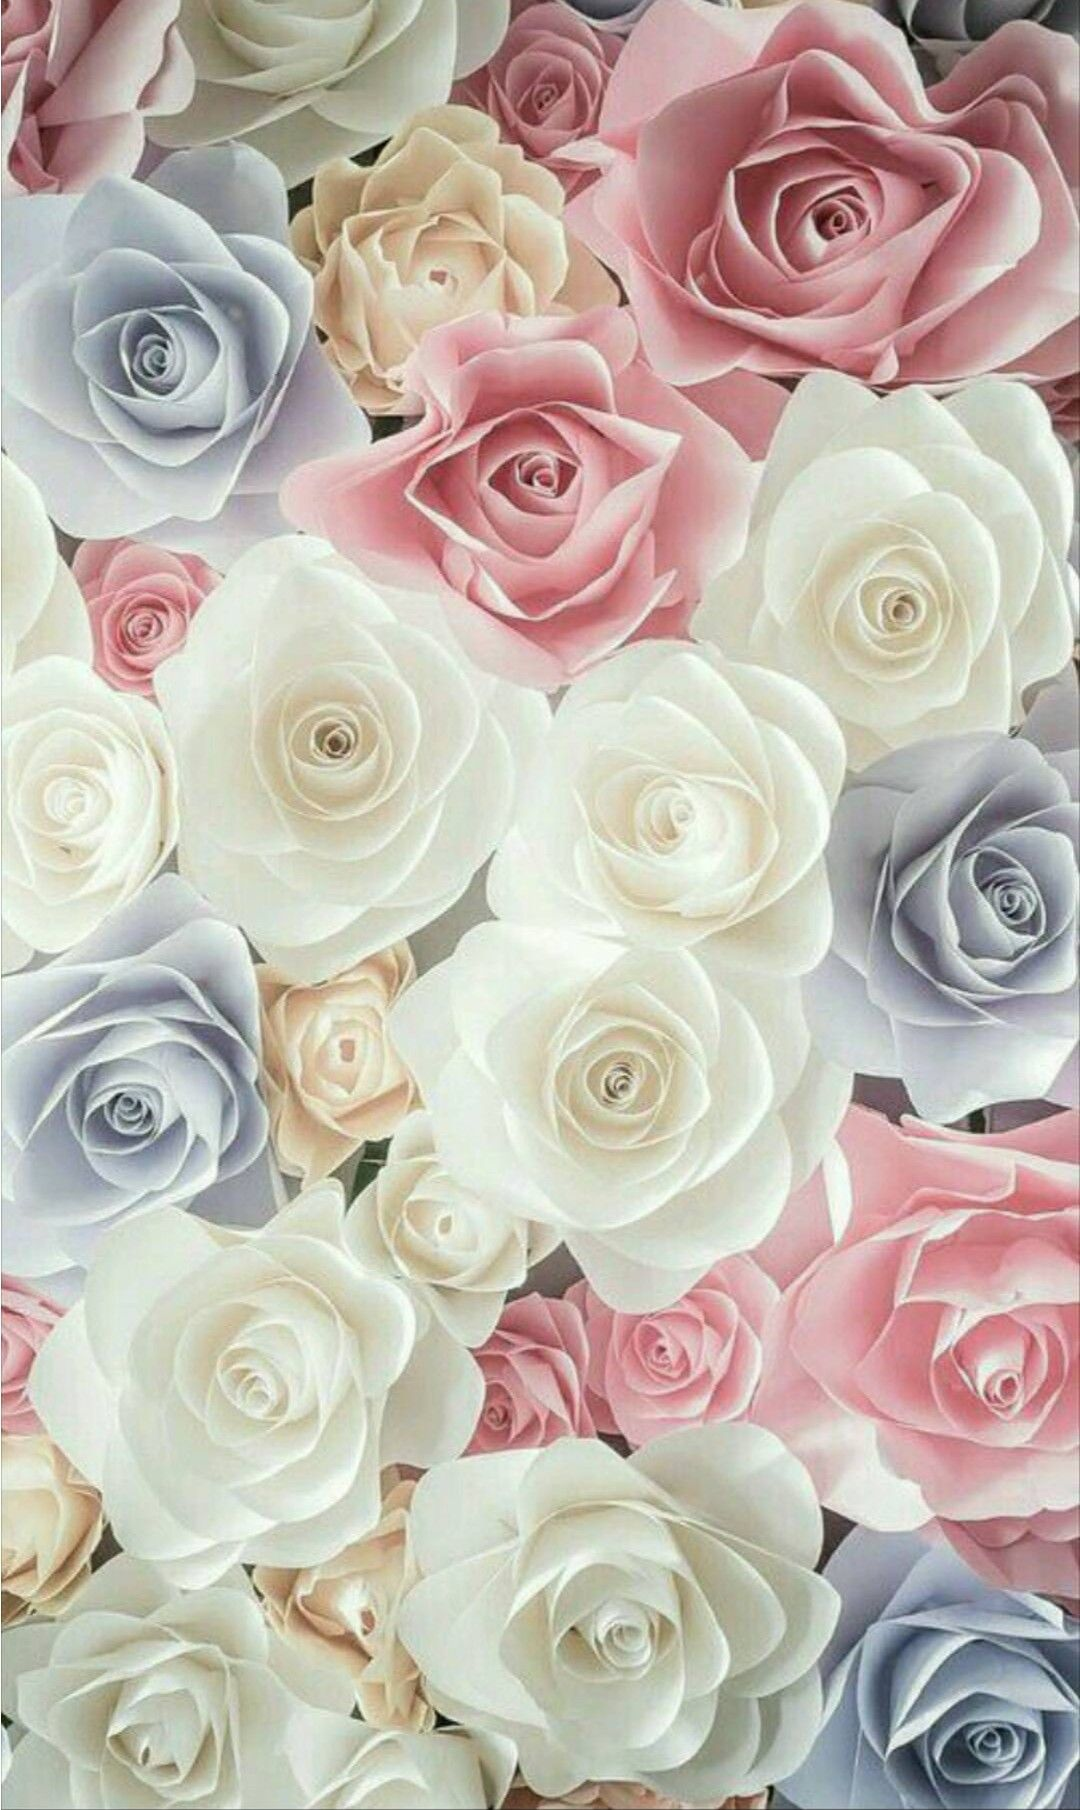 Pin By Brianna On Iphone Wallpapers Iphone Background Roses